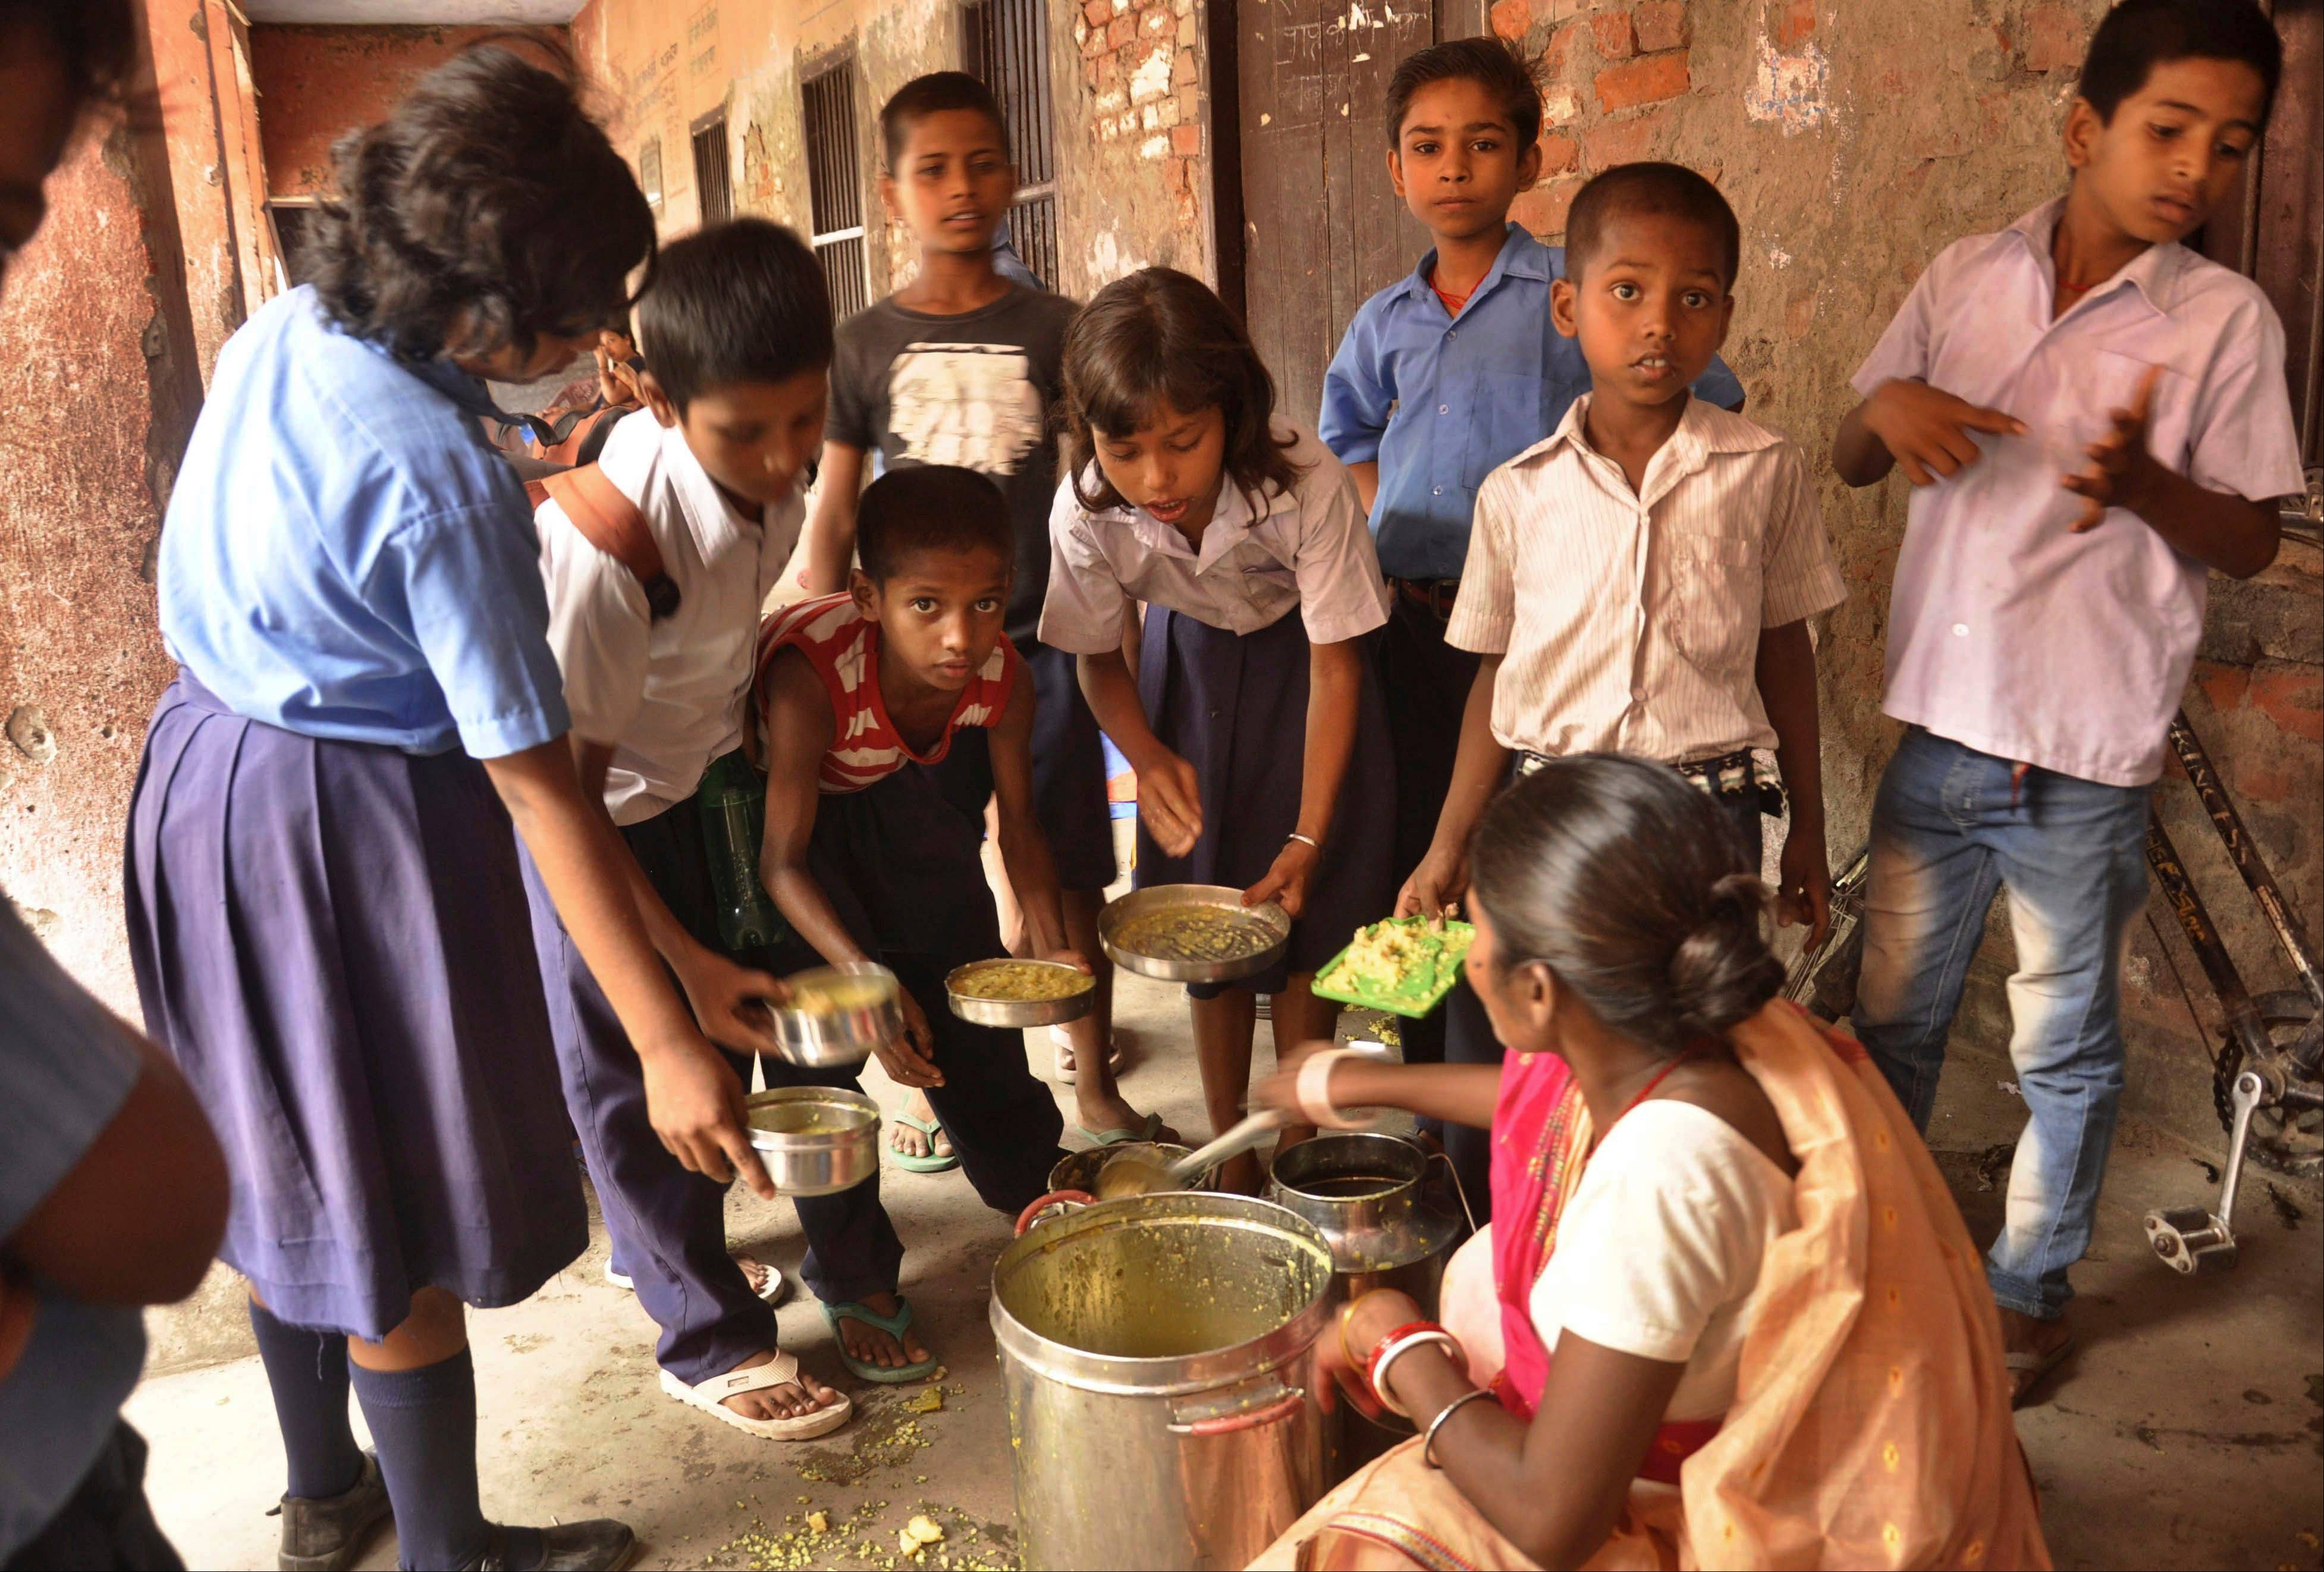 An Indian cook distributes free school lunches to children at a government run school in Patna, India, Wednesday. On Tuesday, at least 22 children died and more than two dozen others were sick after eating a free school lunch that was tainted with insecticide.